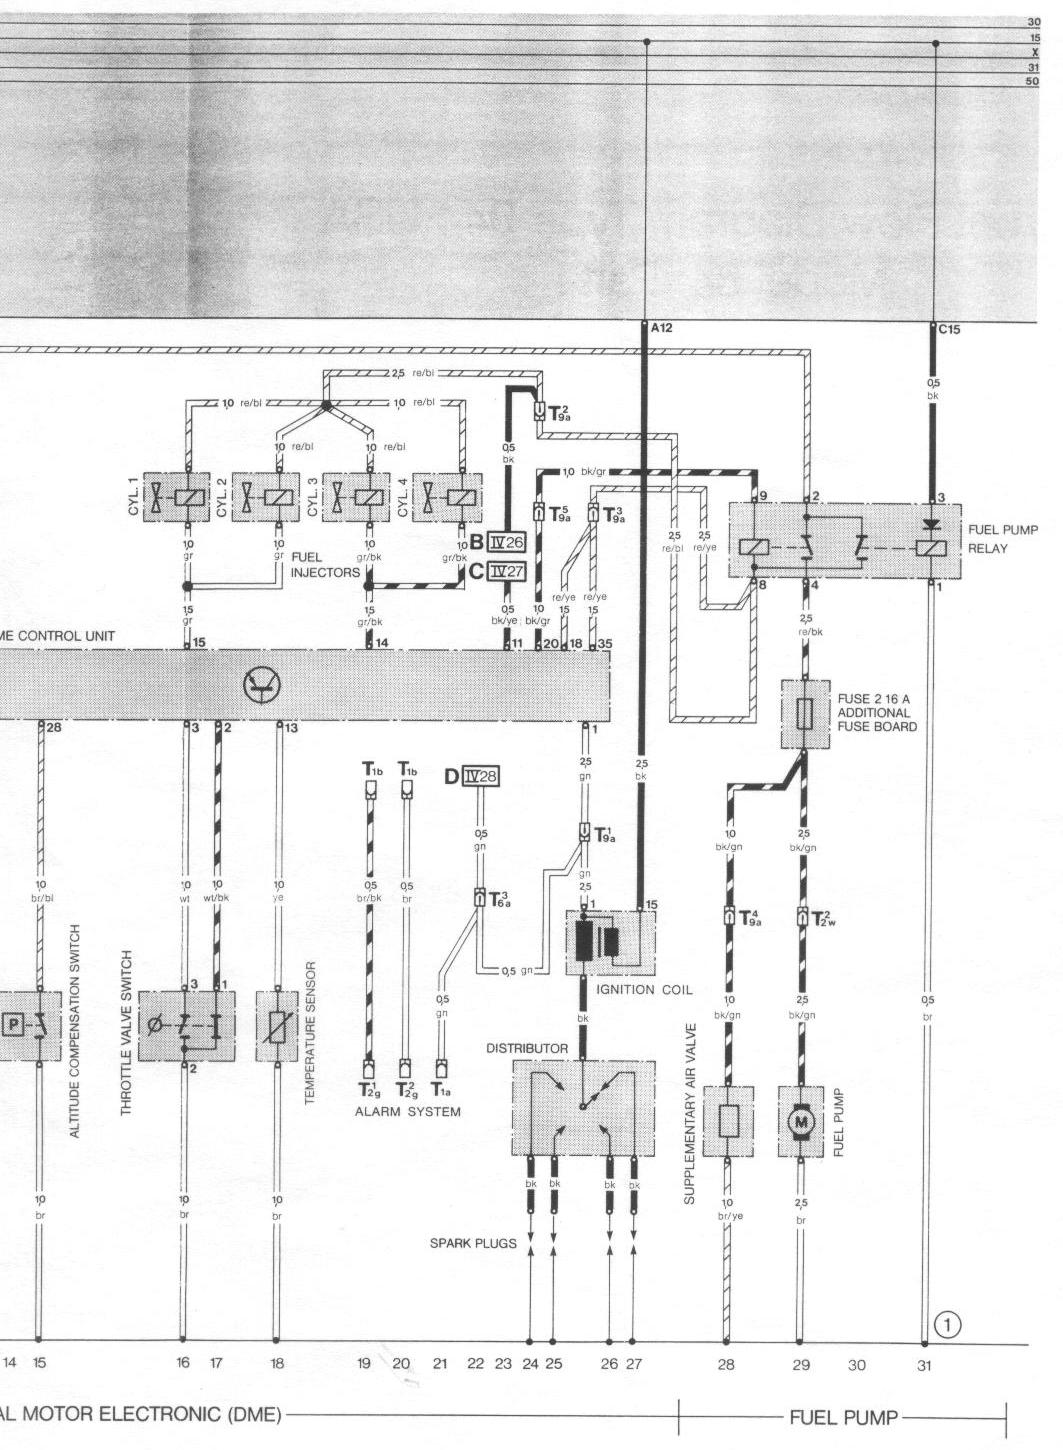 Pelican Parts: Porsche 924/944 Electrical Diagrams on corvette schematics diagrams, porsche parts diagrams, banquet style meeting room set up diagrams, porsche transmission, fluid power diagrams, complete streets diagrams, porsche 996 diagrams, porsche engine, porsche 914 wiring harness, porsche blueprints,